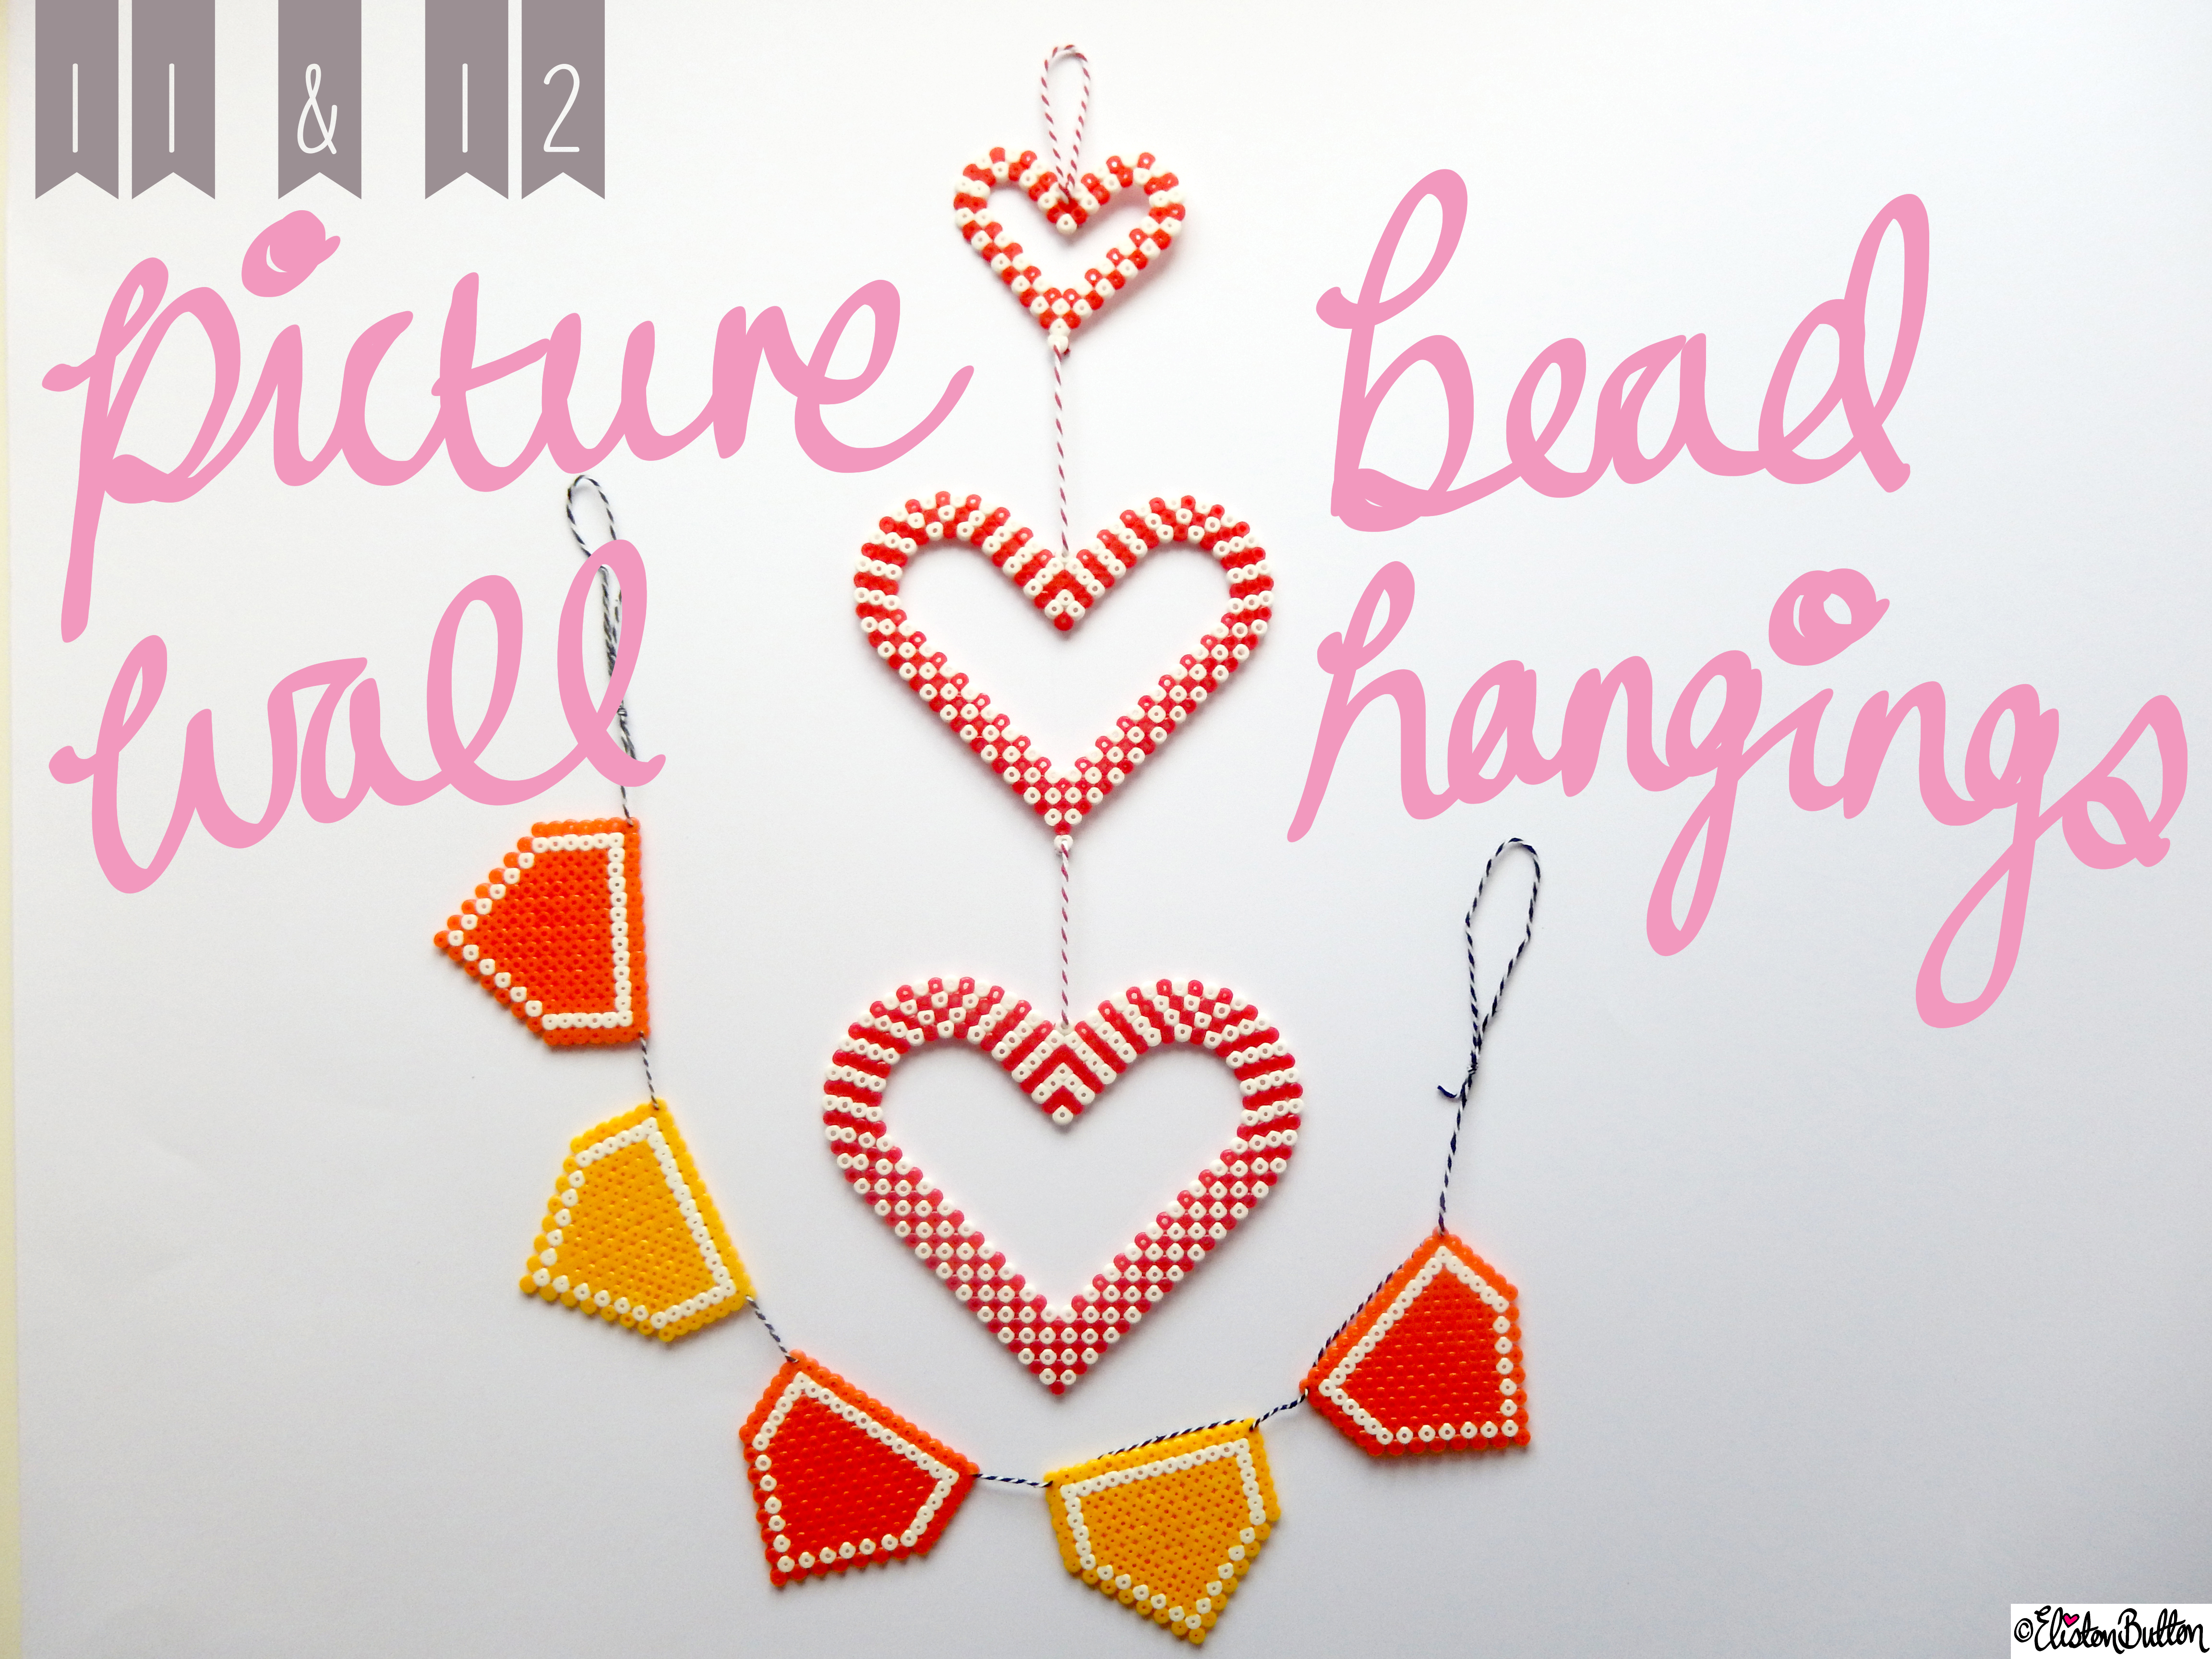 Picture Bead Wall Hangings Title Picture - Create 28 - No. 11&12 - Picture Bead Wall Hangings at www.elistonbutton.com - Eliston Button - That Crafty Kid – Art, Design, Craft & Adventure.